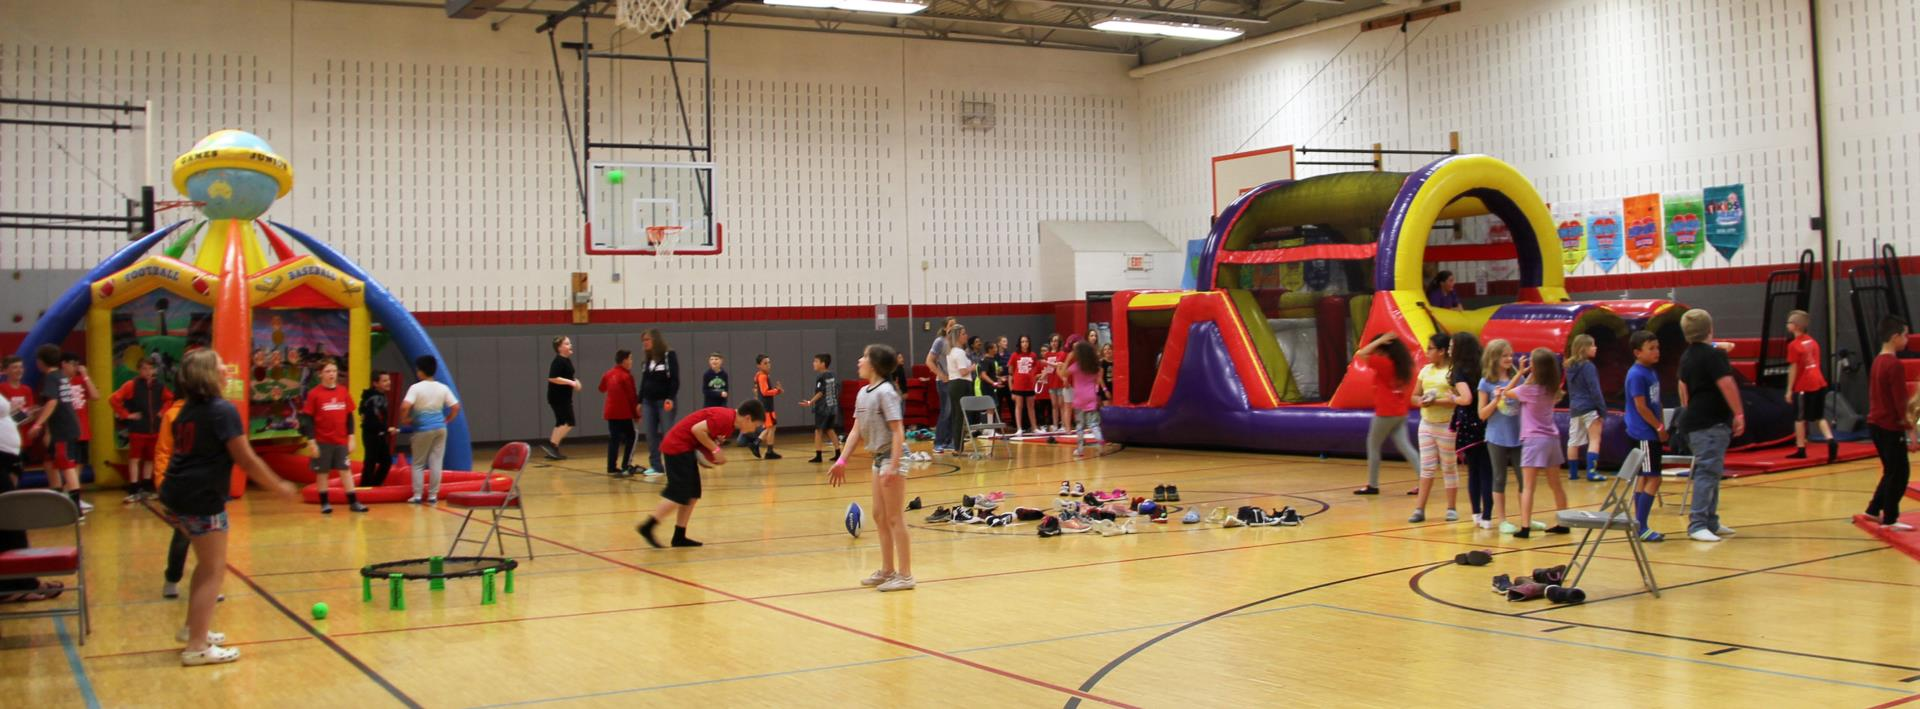 wide shot of carnival activities in gym